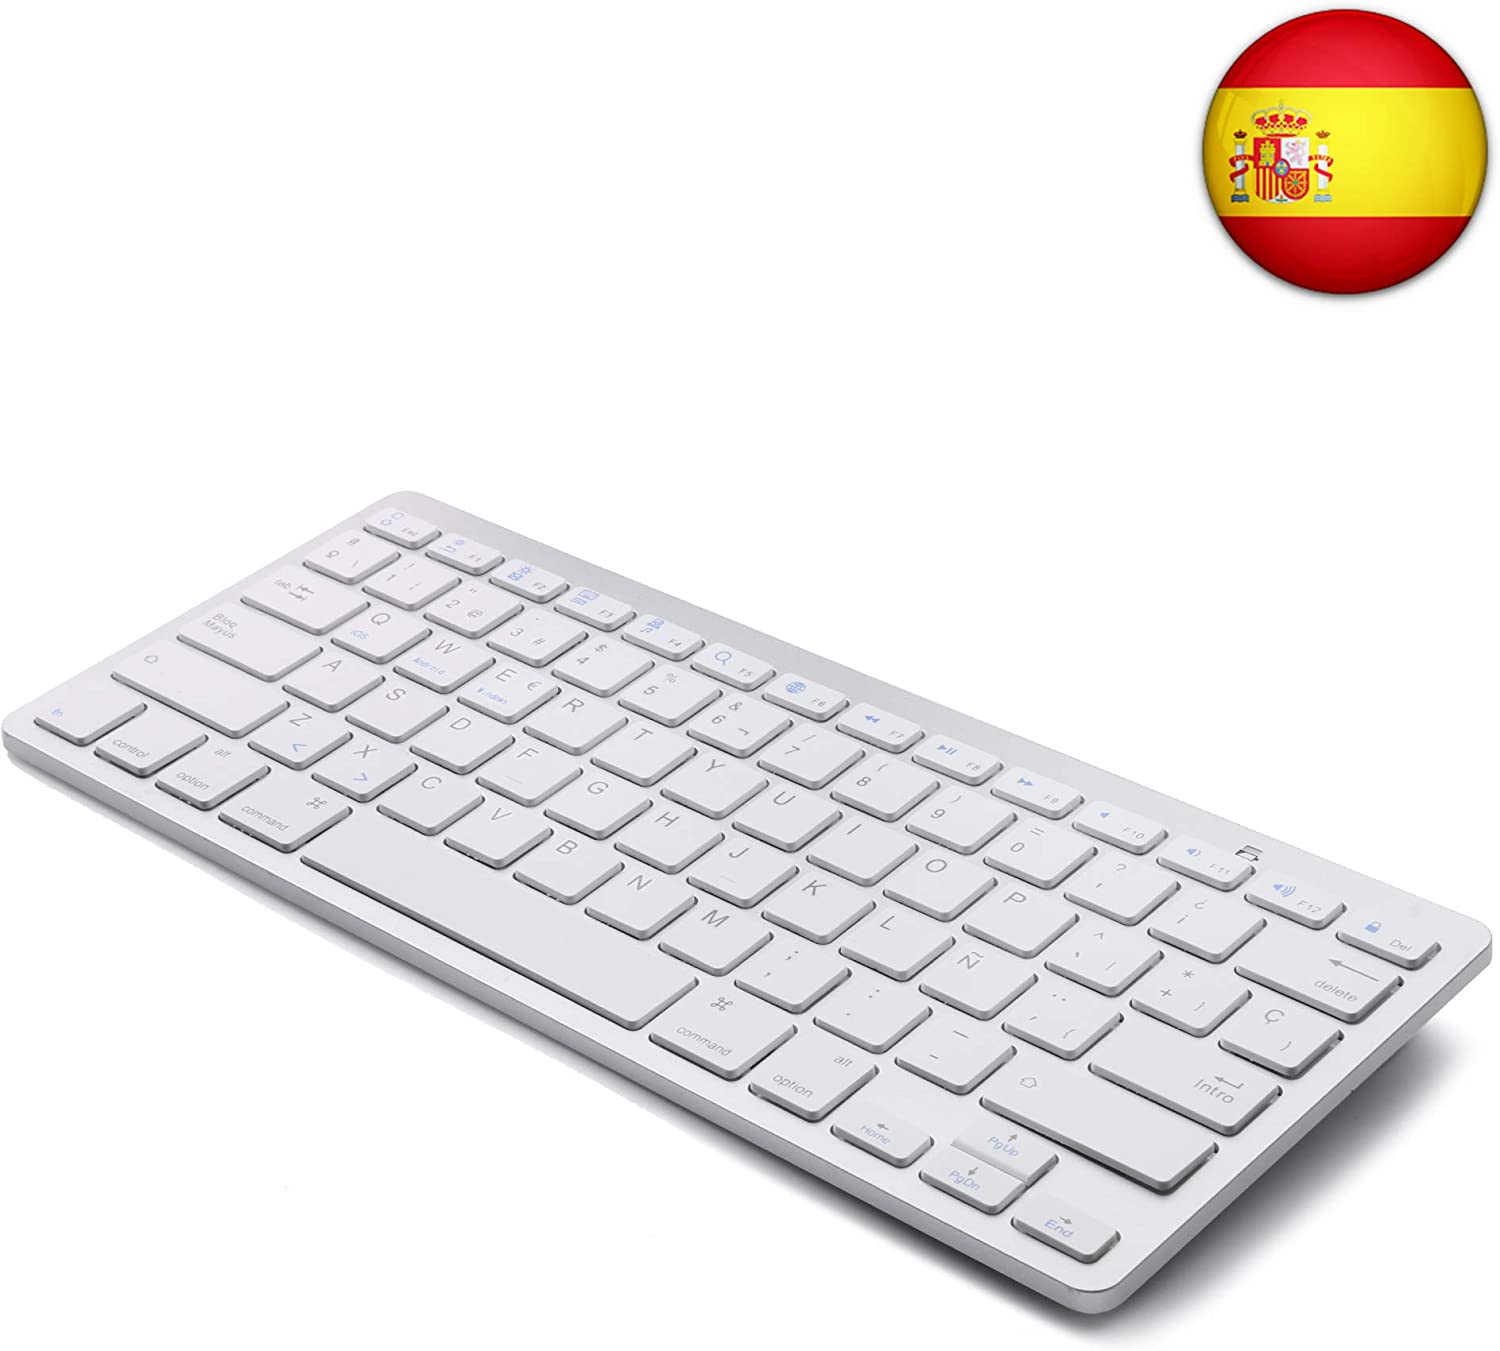 Tableta Teclado Bluetooth, Boriyuan Teclado inalámbrico en español para Mac iPad iPhone iOS Android Windows Smart TV: Amazon.es: Electrónica